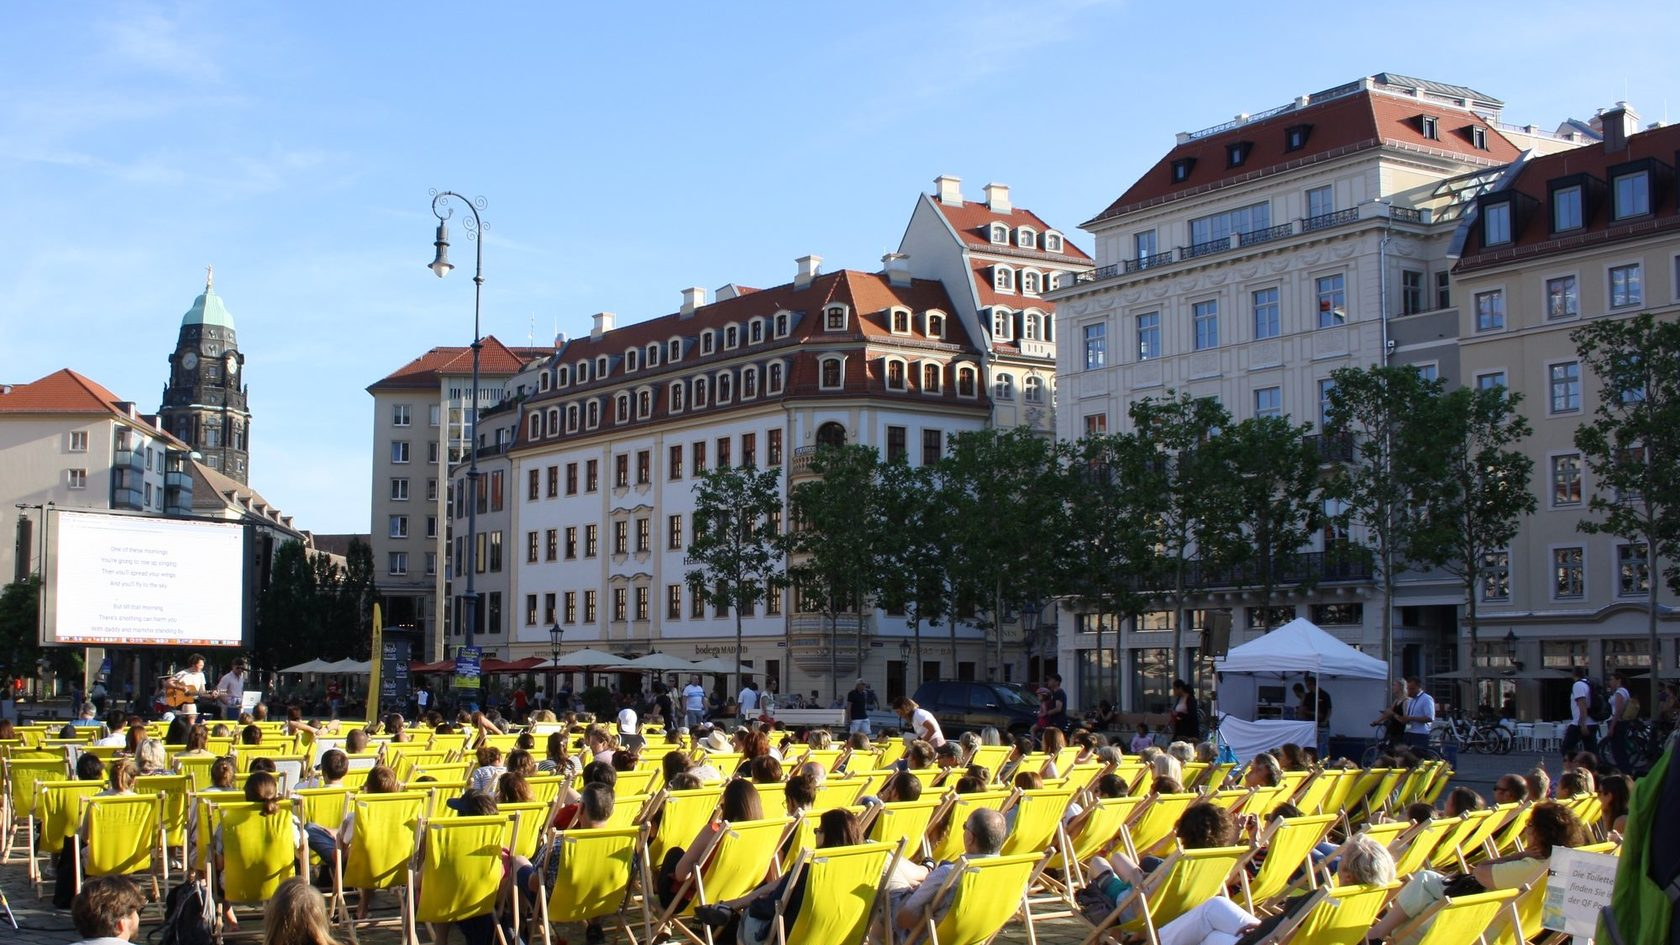 Numerous people are sitting in deck chairs on Dresden's Neumarkt square watching a movie on a mobile cinema screen.